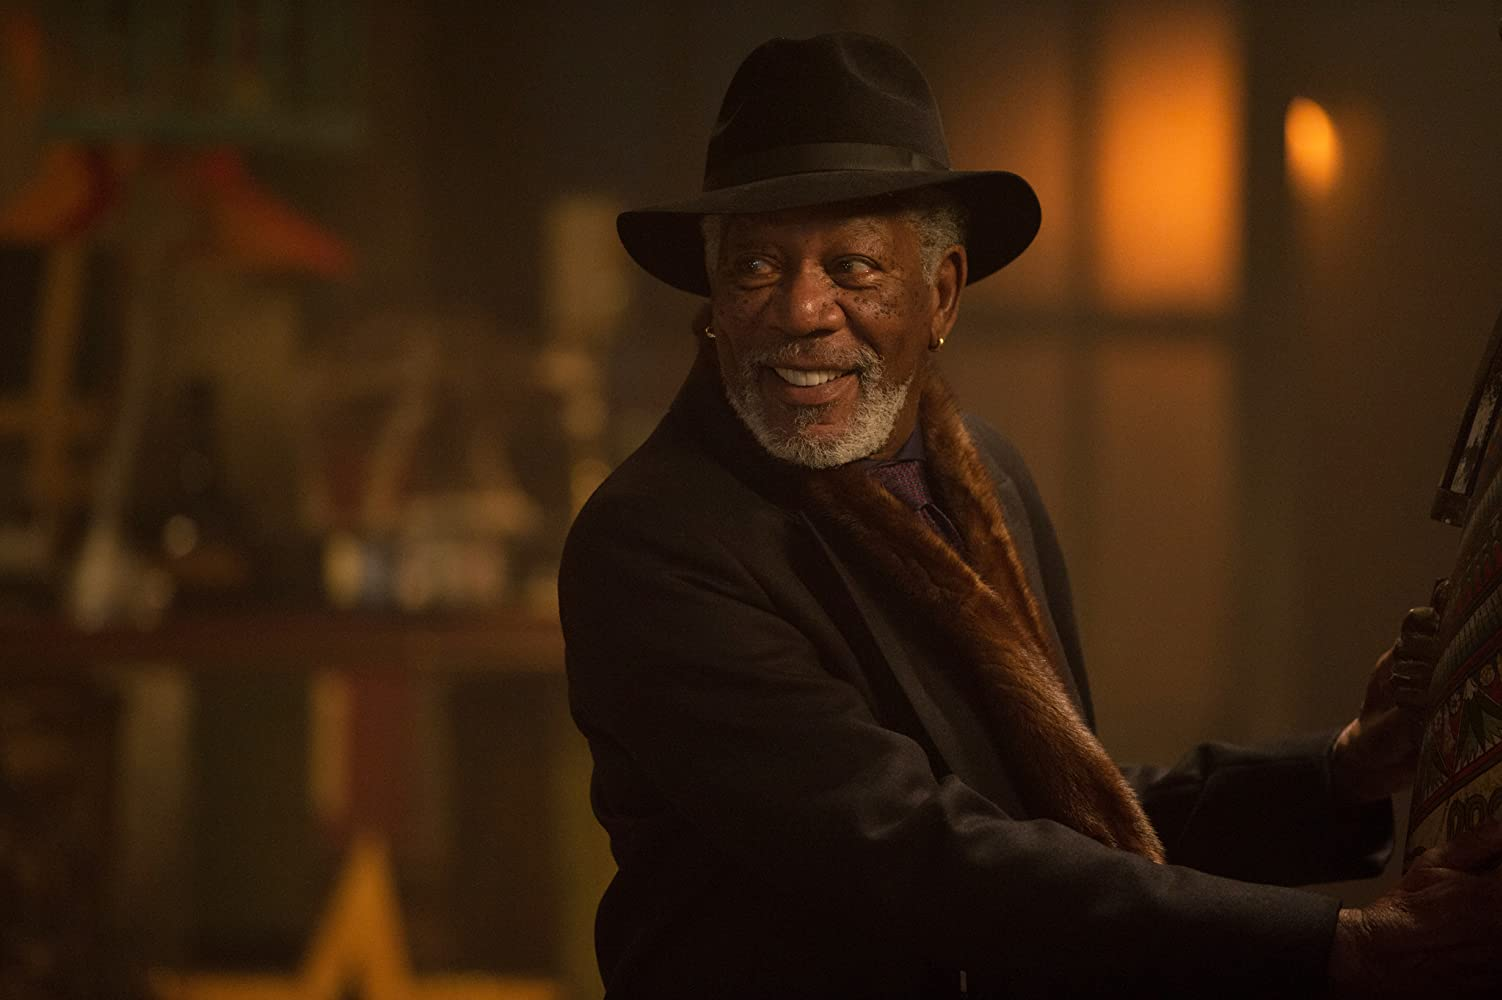 Morgan Freeman in Now You See Me 2 (2016)